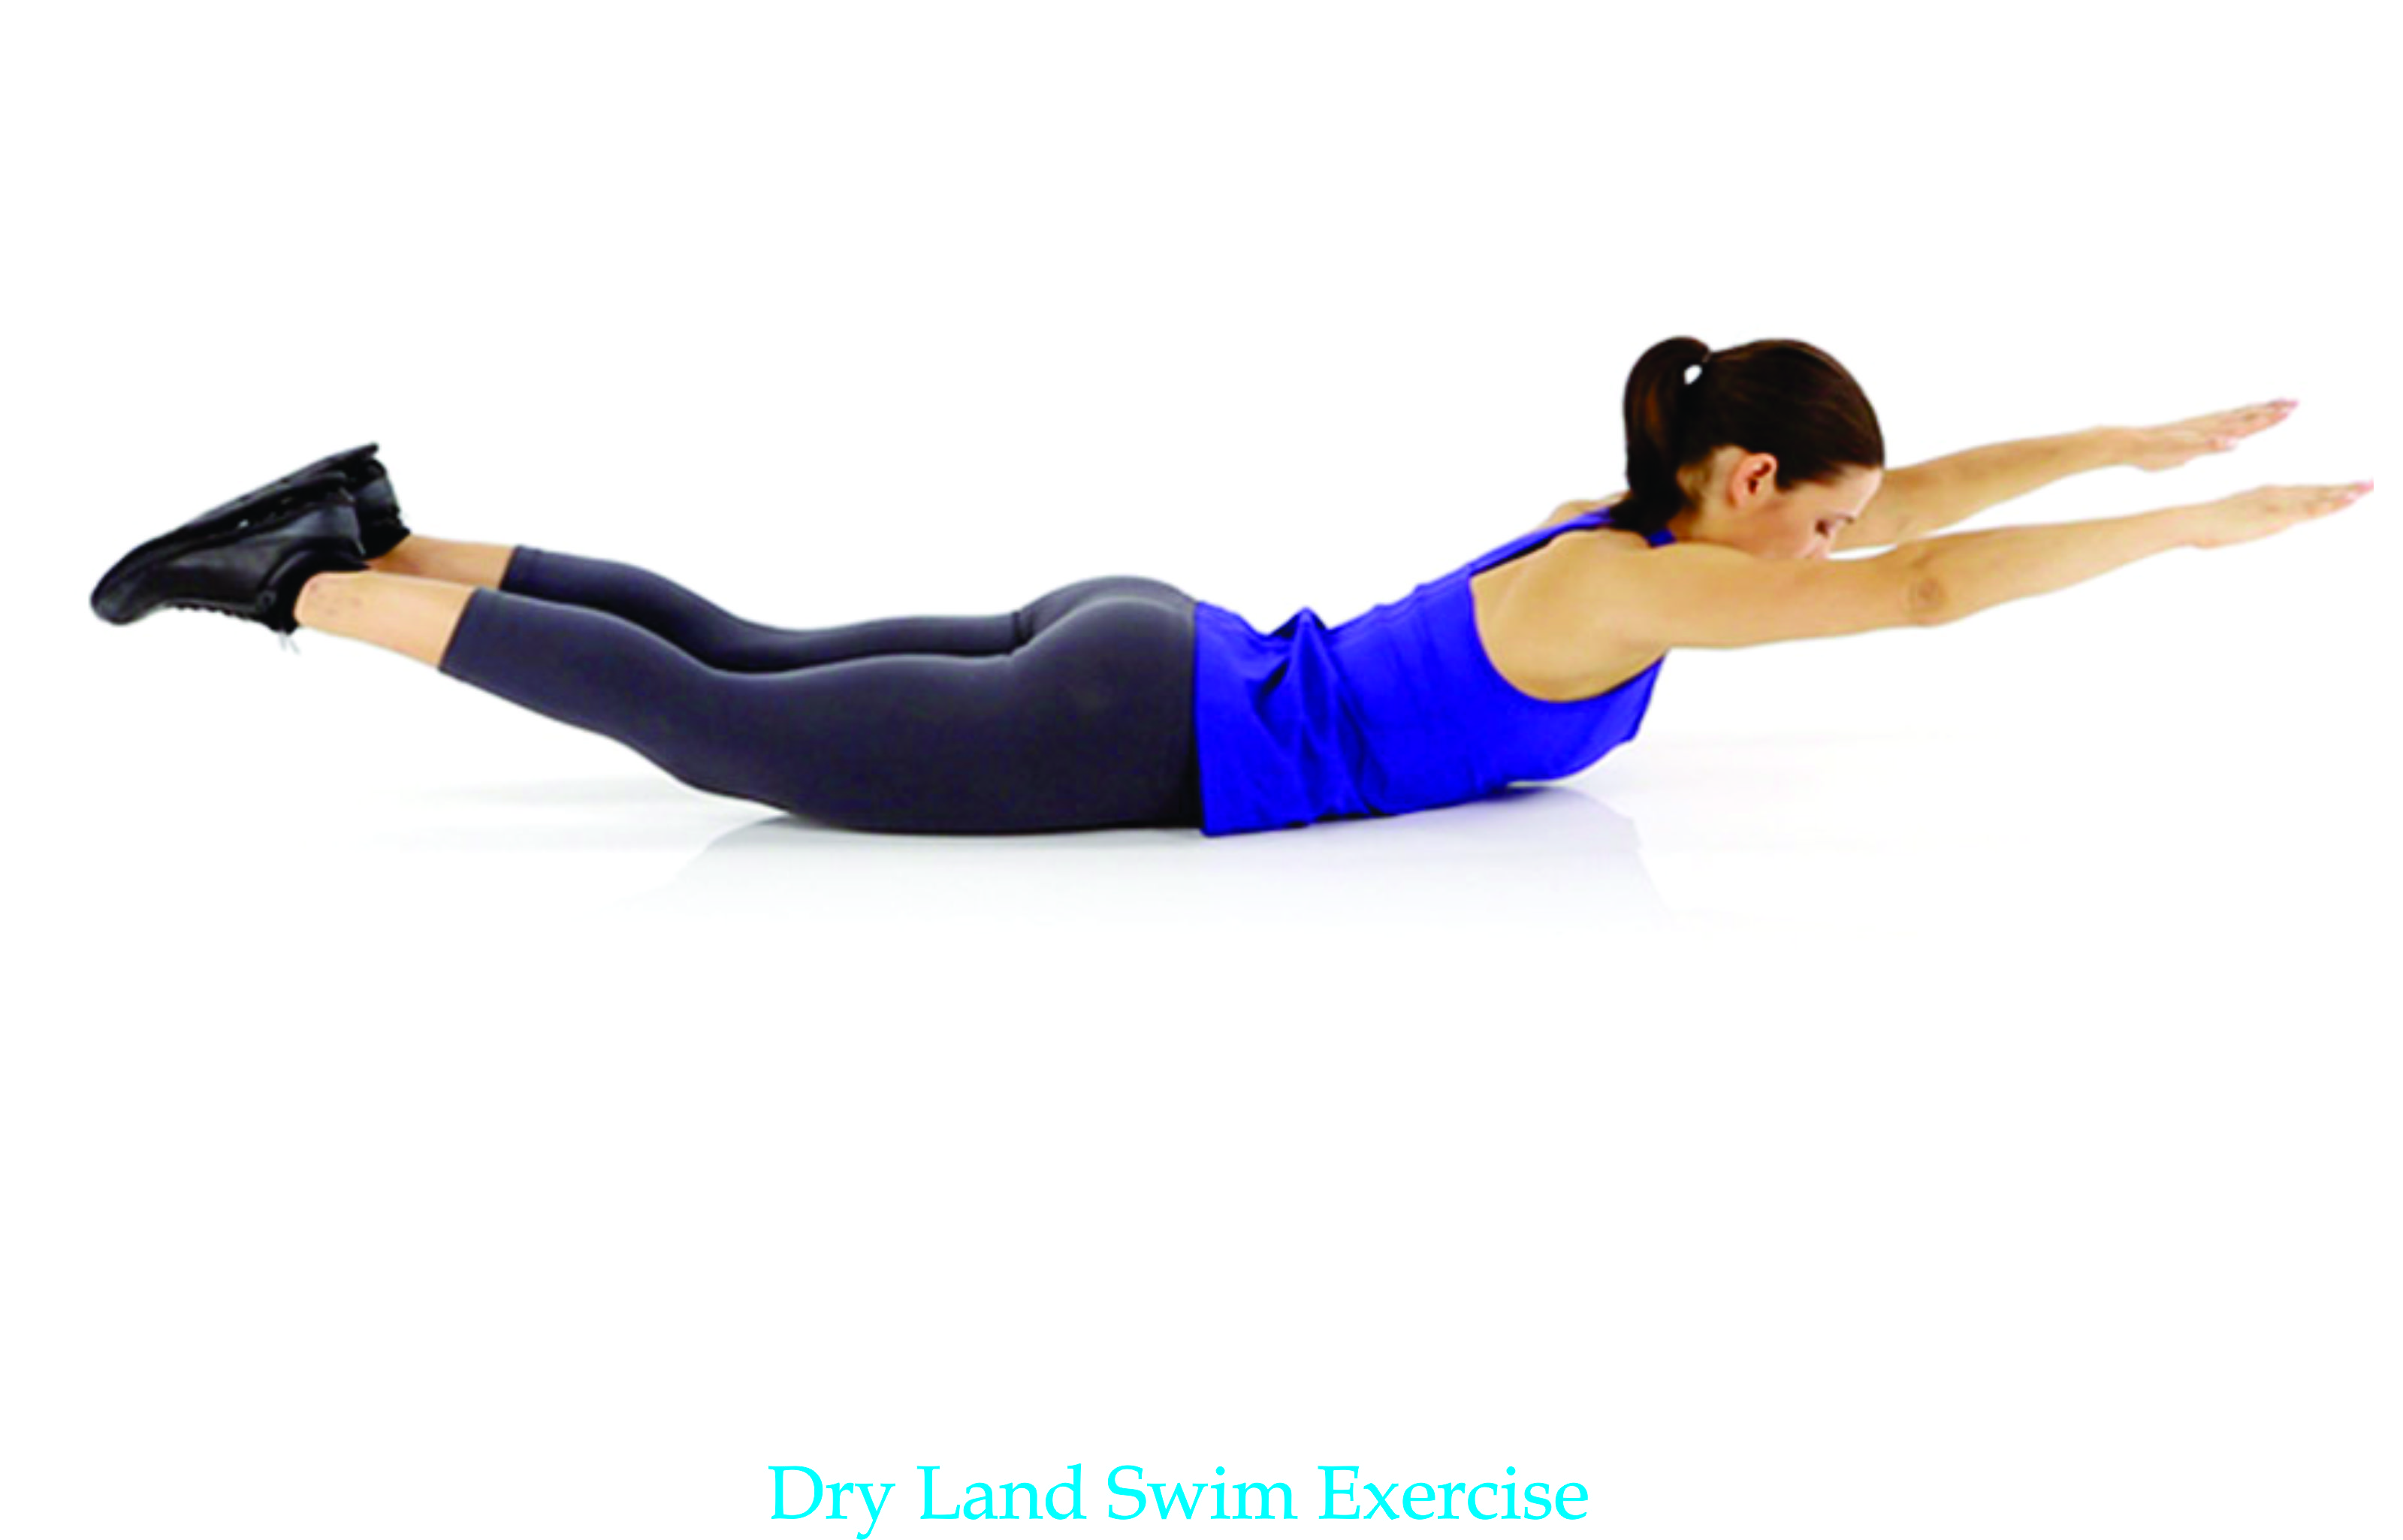 dry land swim grow taller exercise